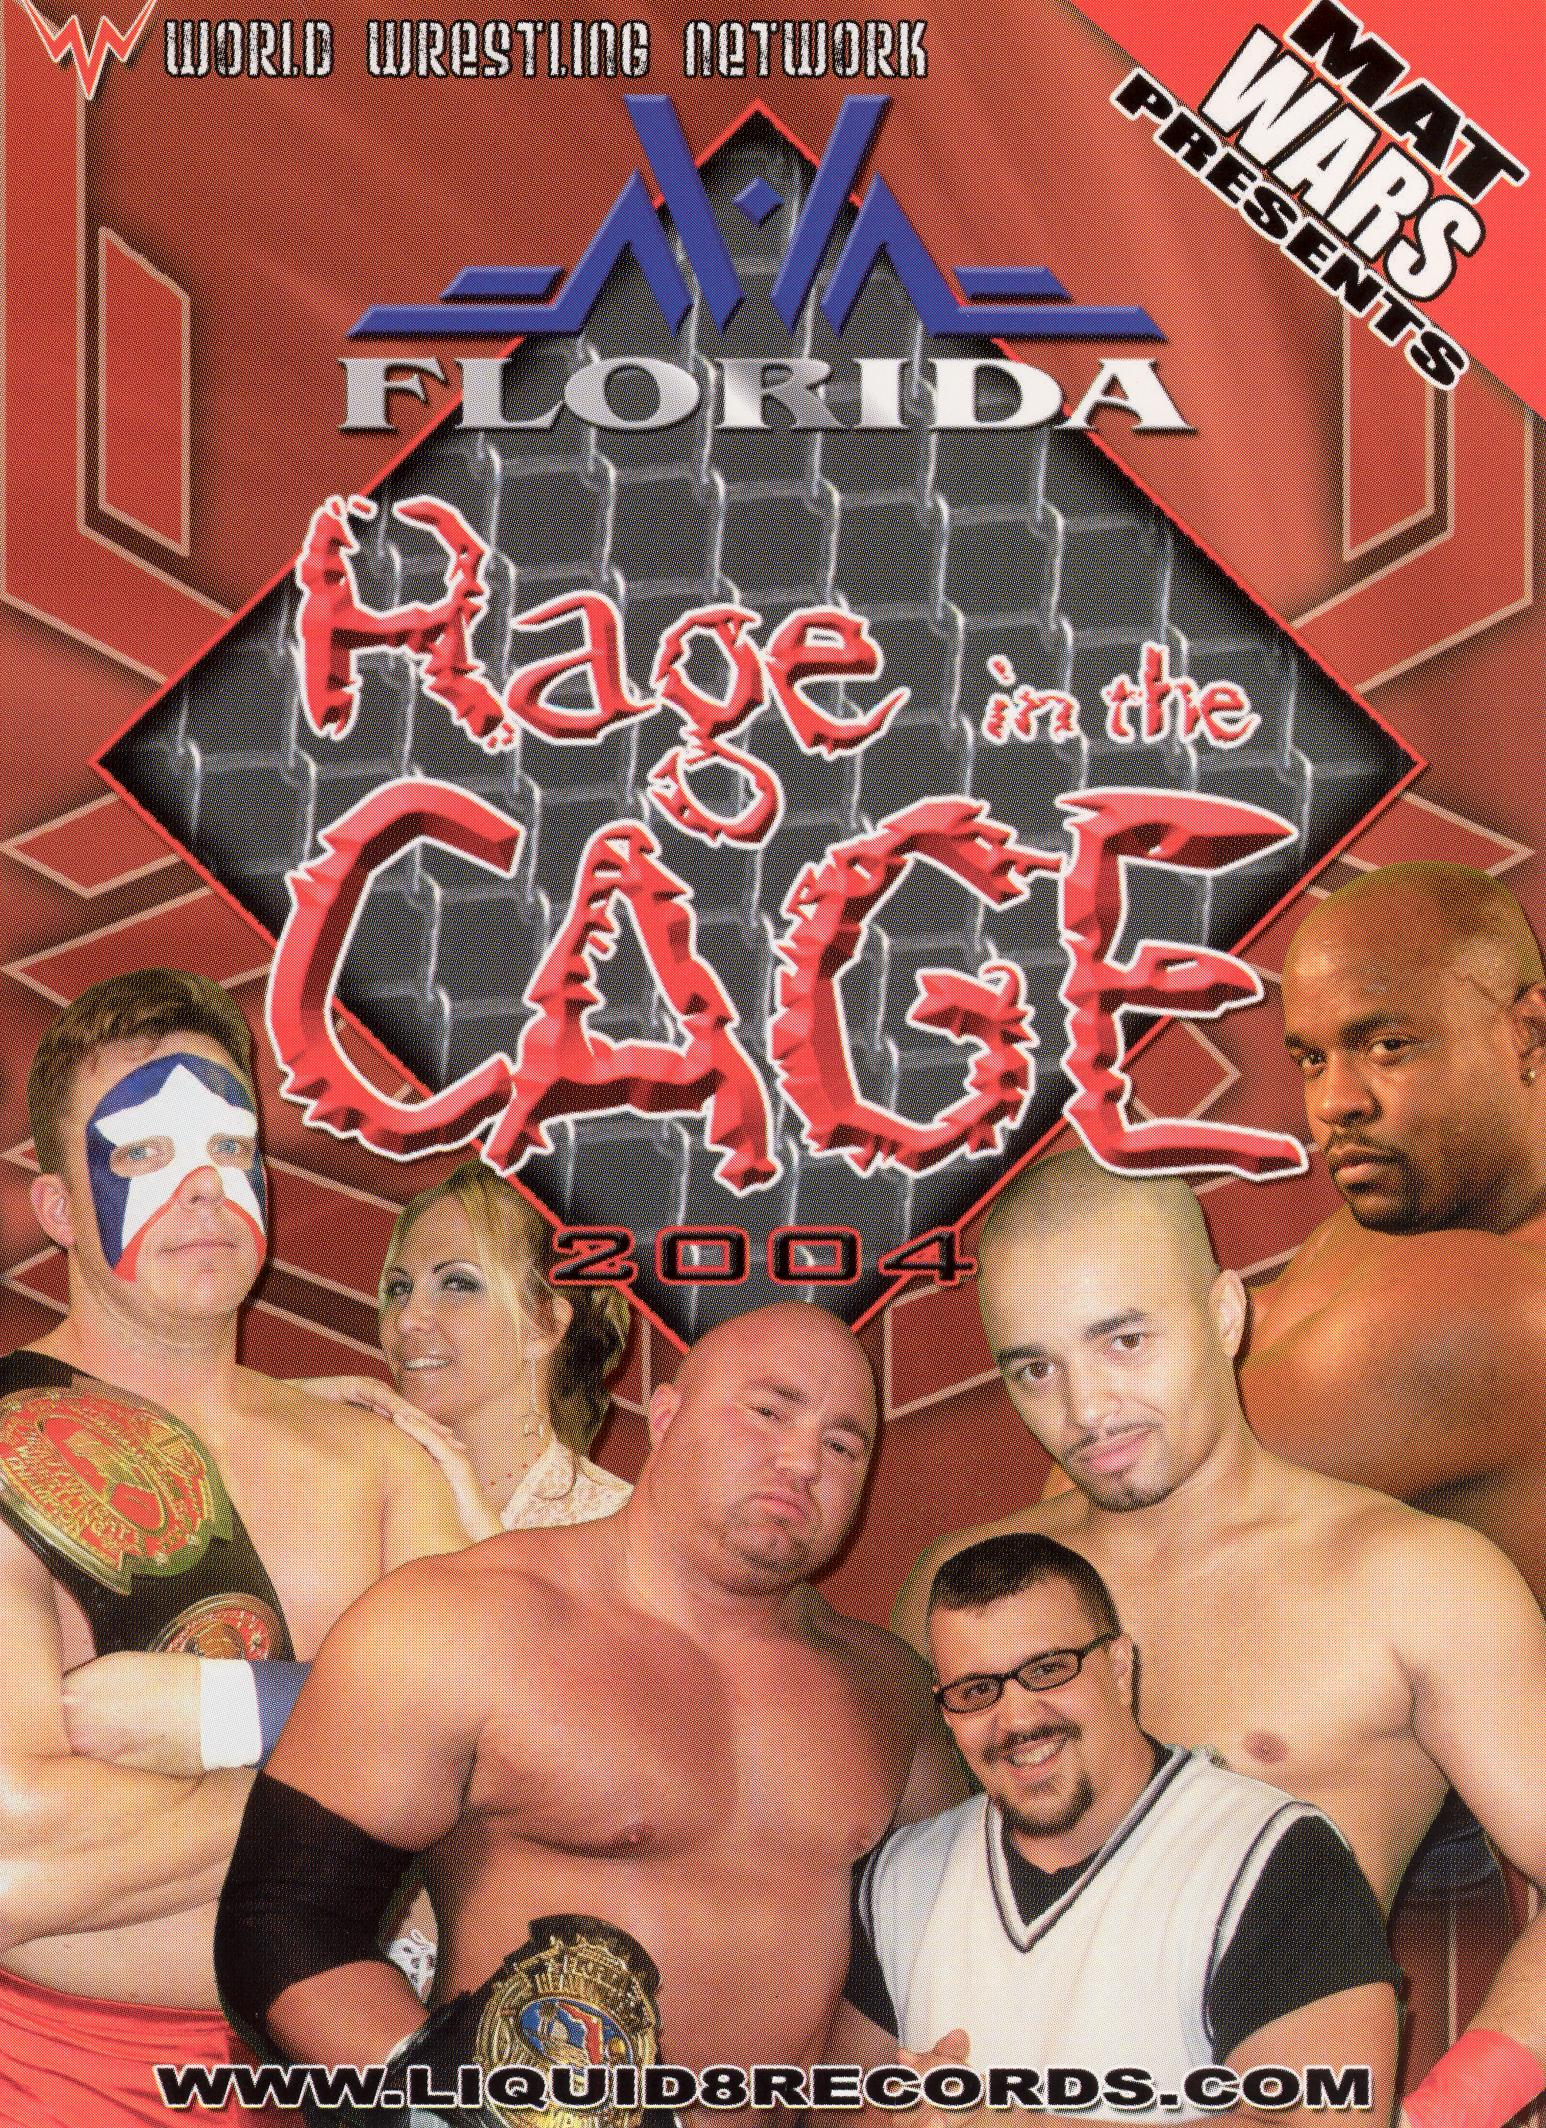 Mat Wars: NWA Florida Rage In the Cage 2004